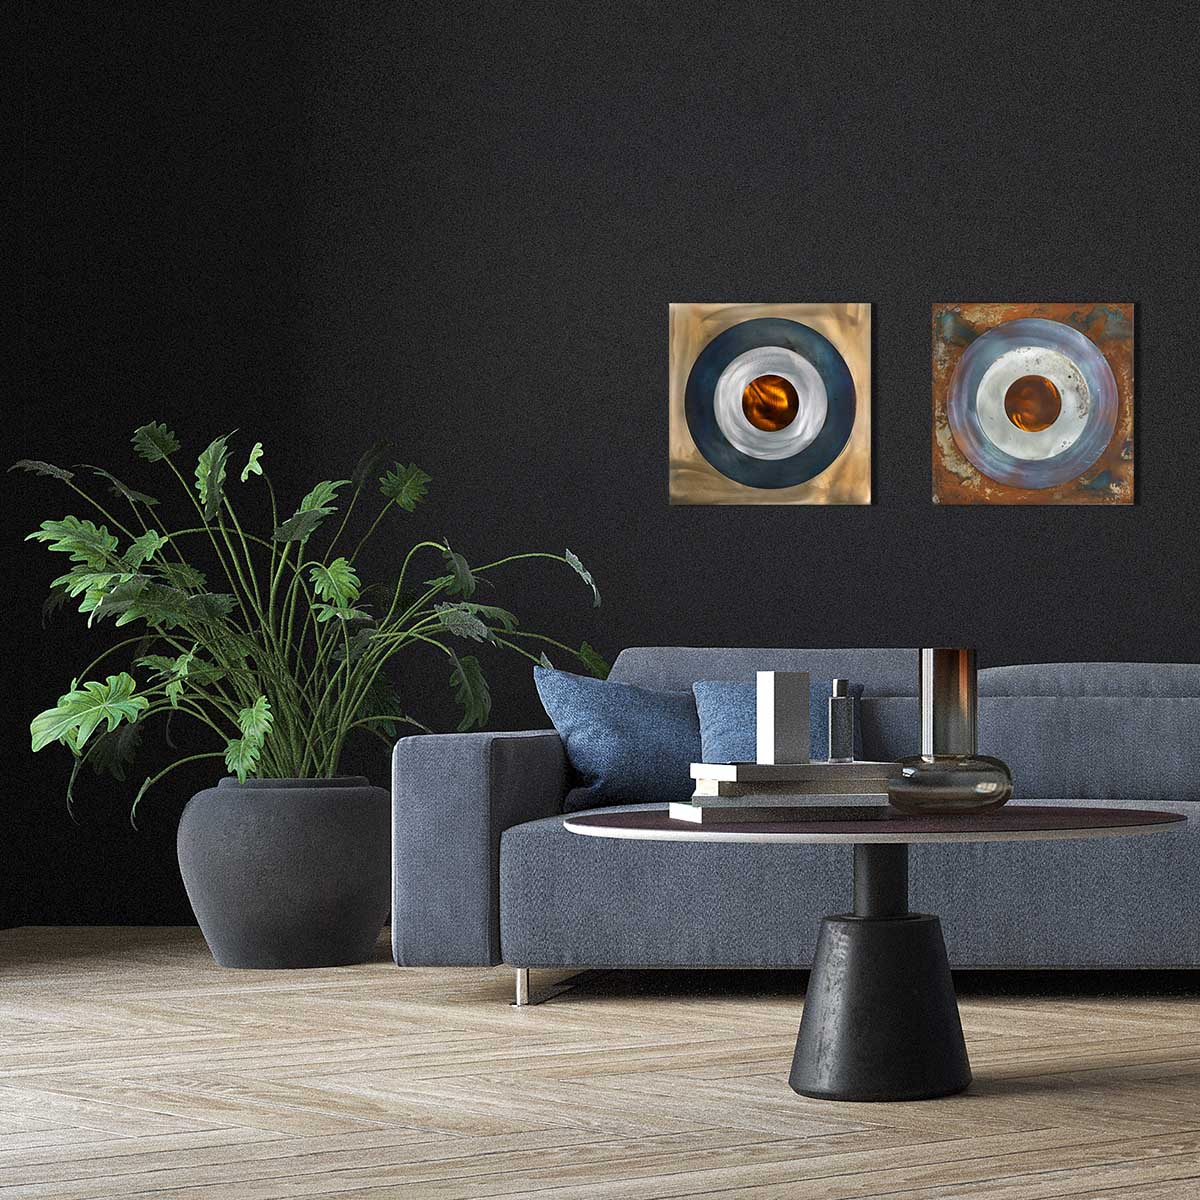 Two steel roundels in a living room.